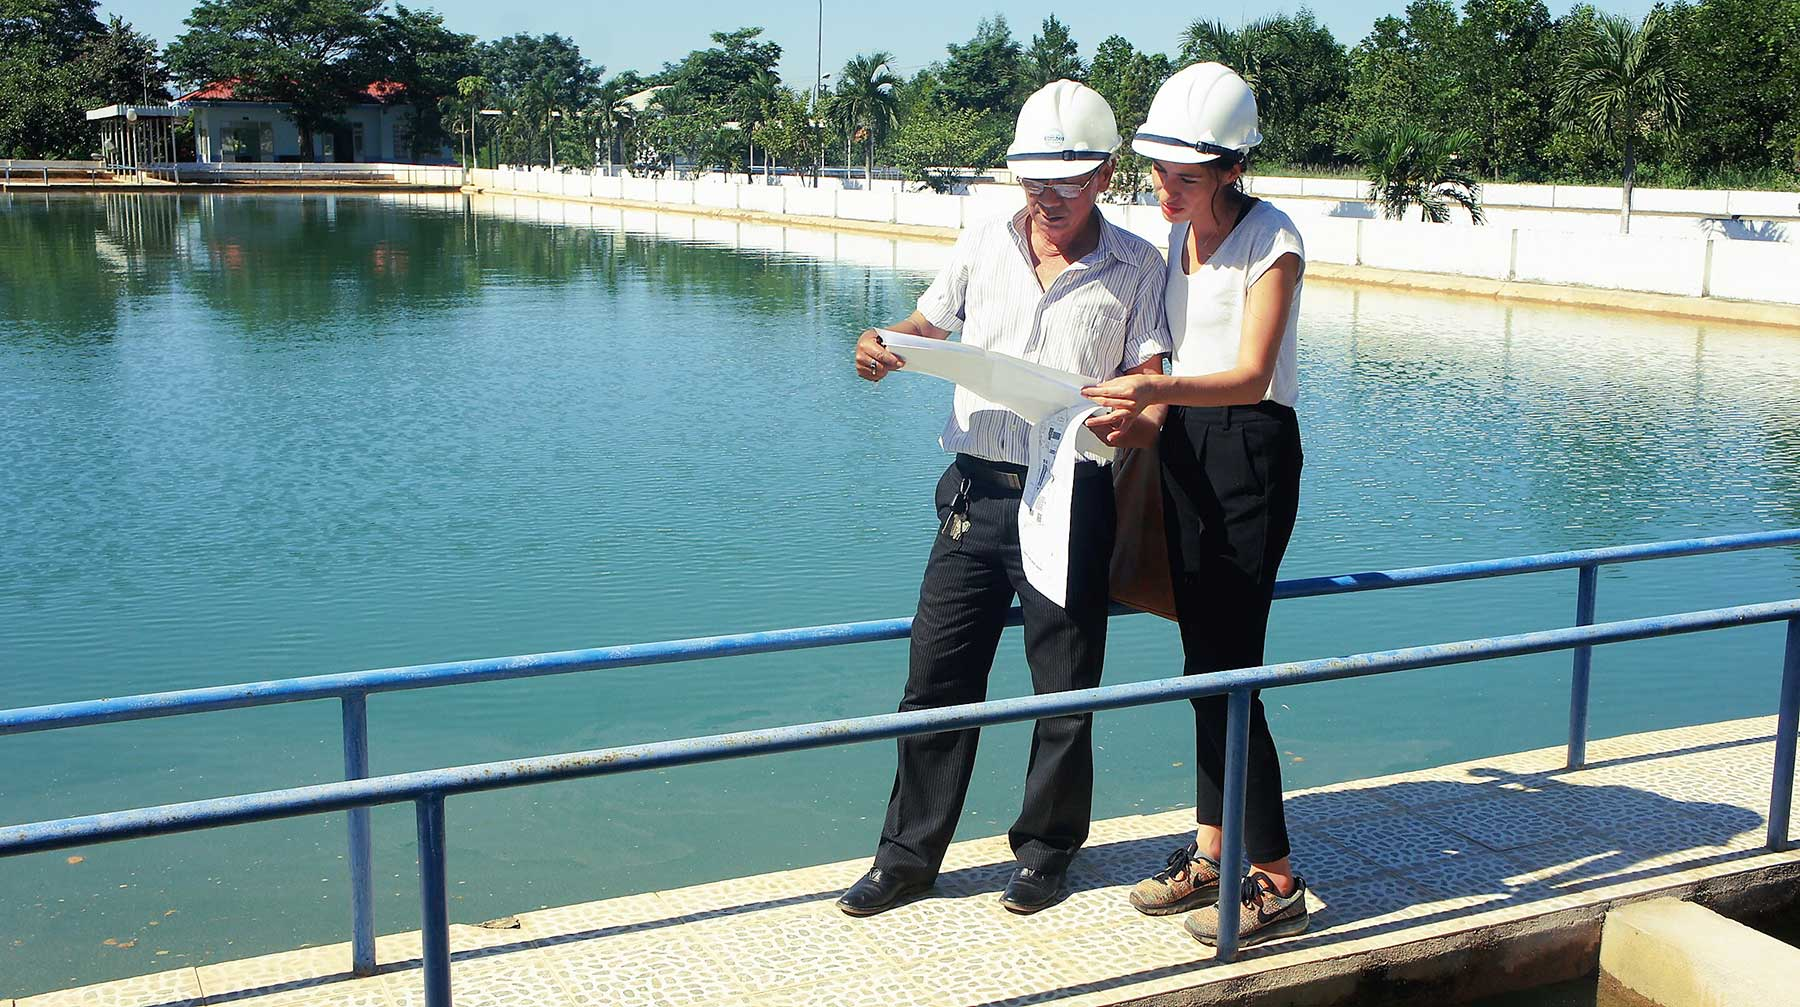 Former student's research sees impact on safe water access in Vietnam